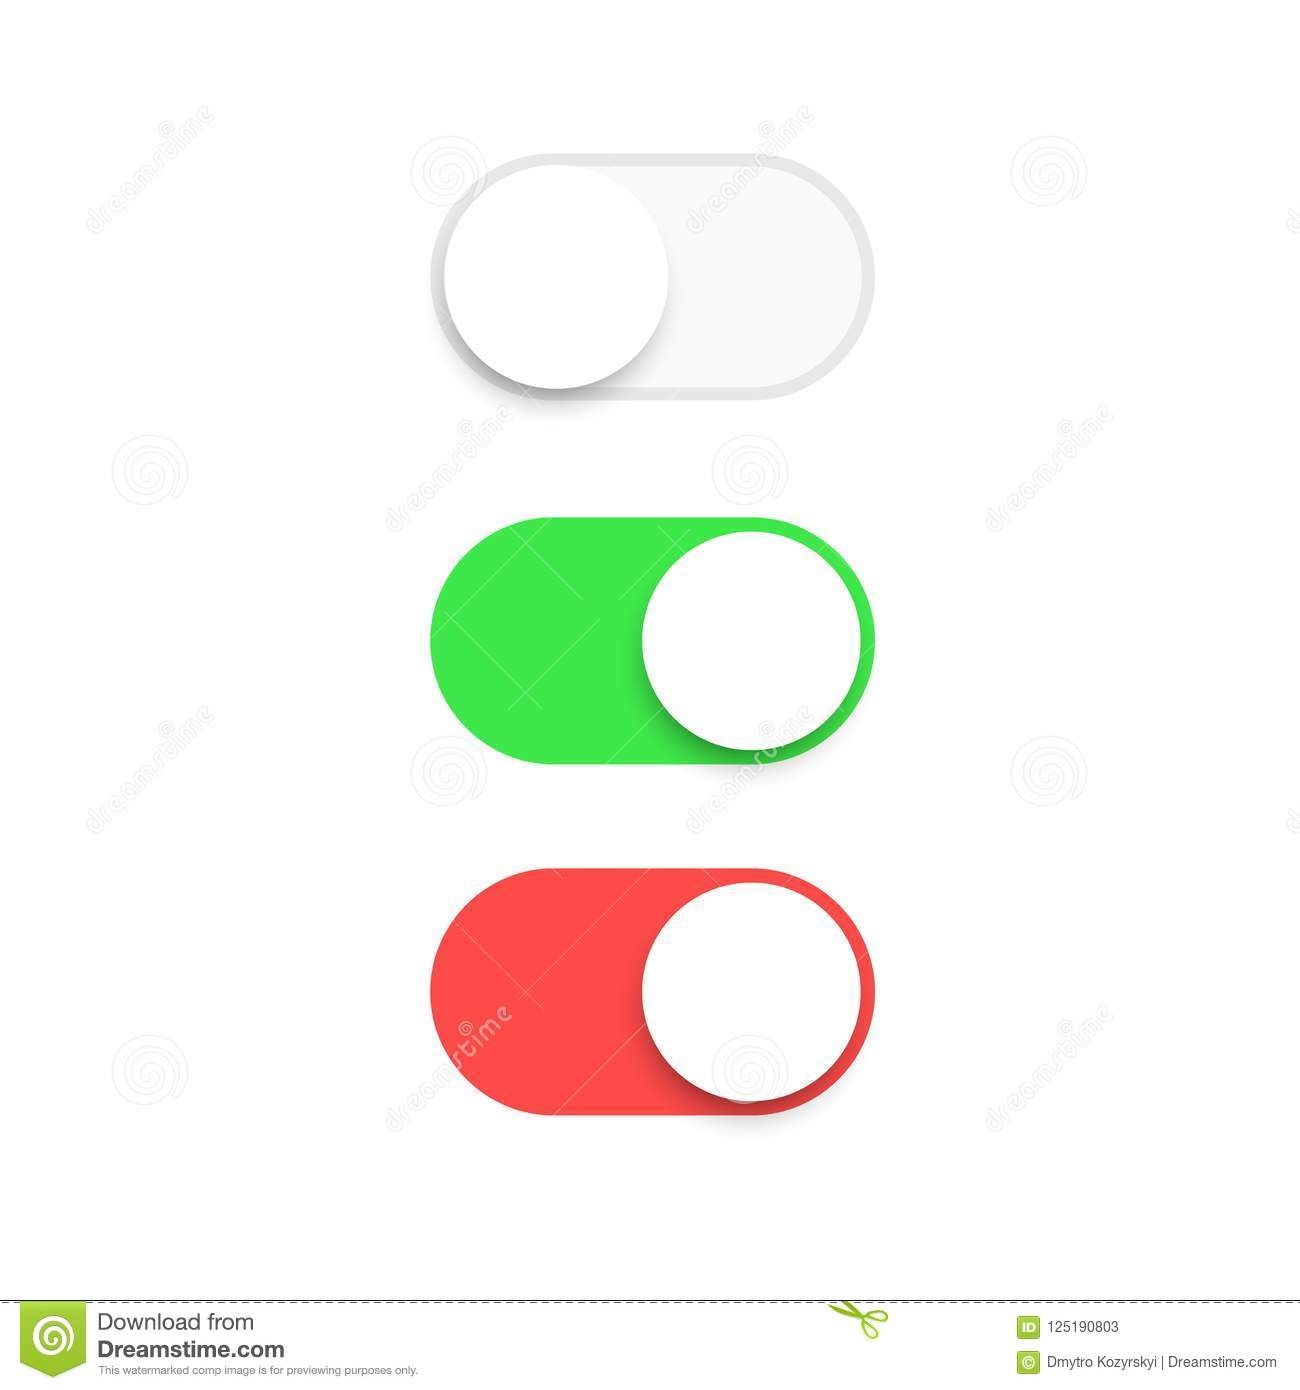 Realistic Switch Toggle Buttons Set Or Tree Sliders In On And Off